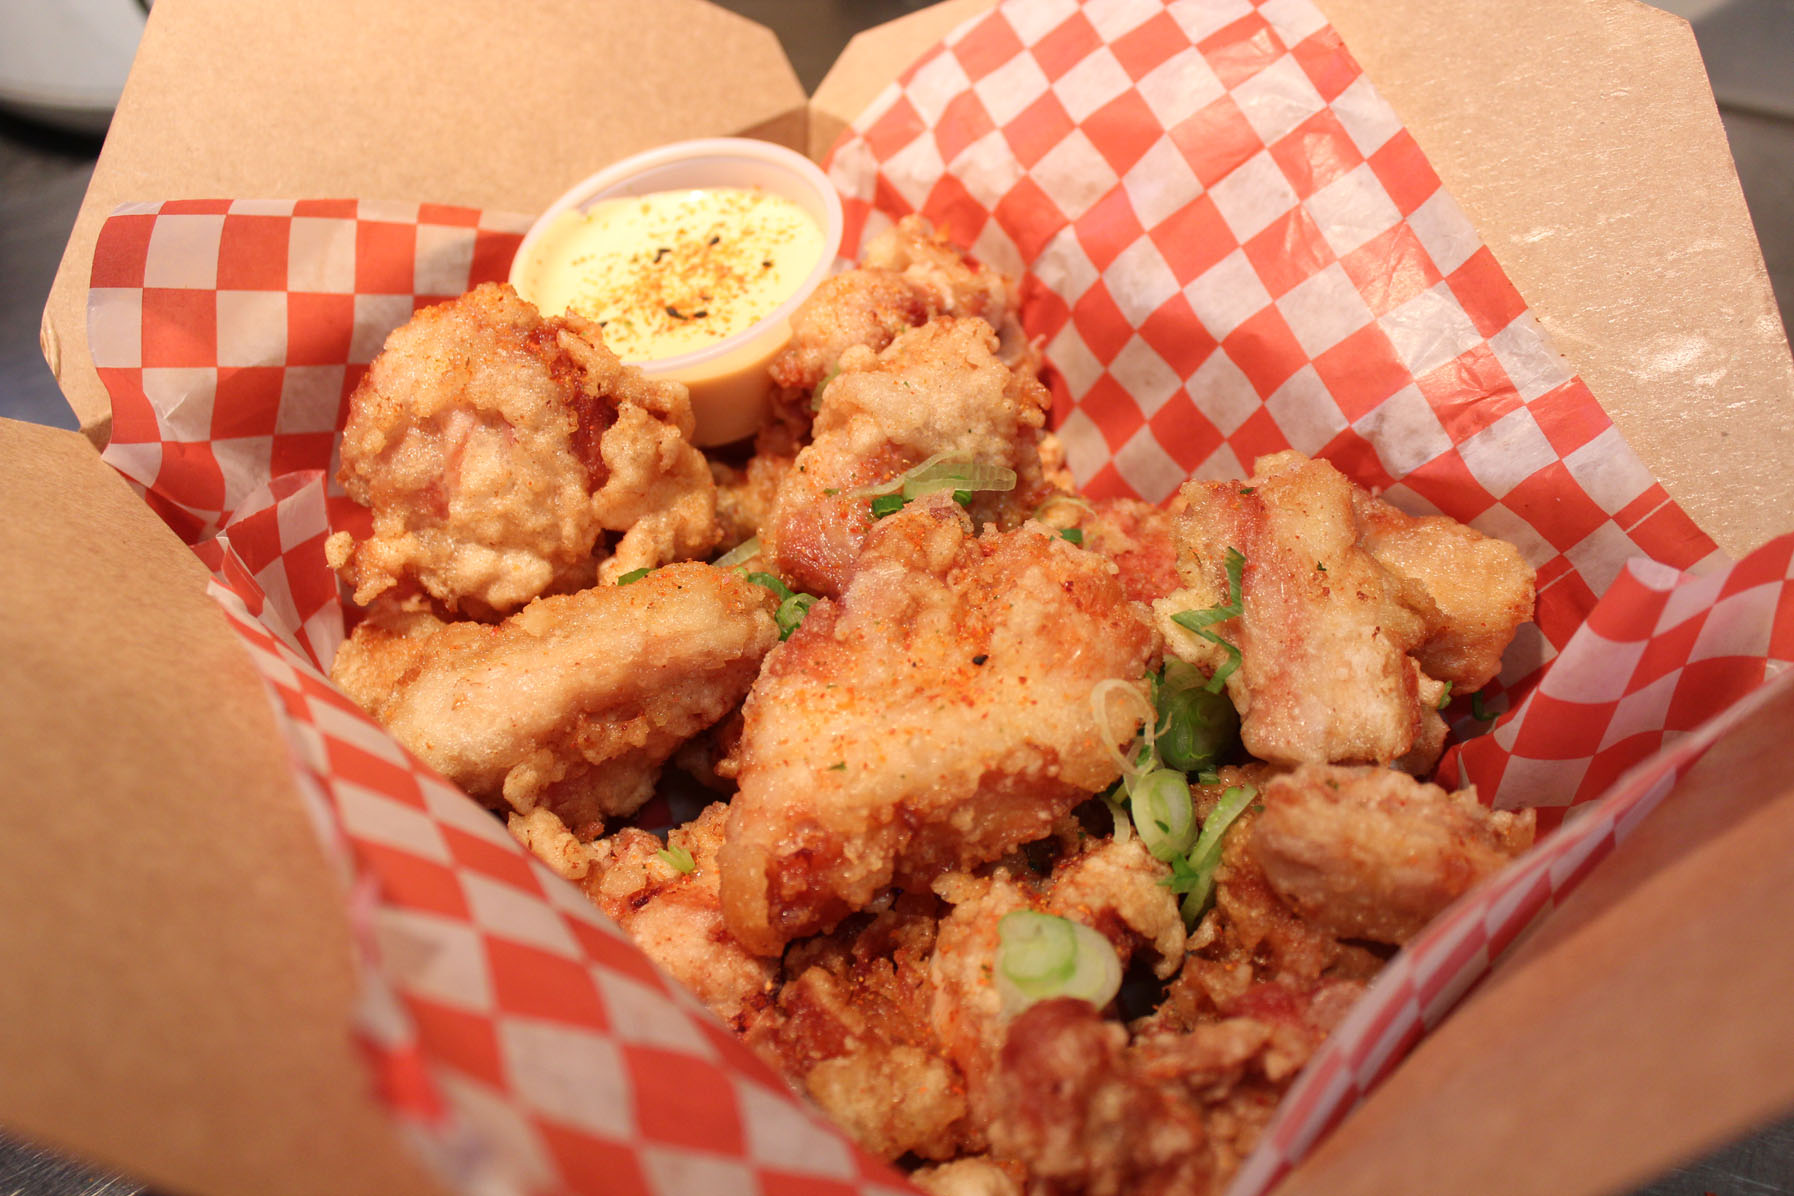 Gushi's karaage chicken box